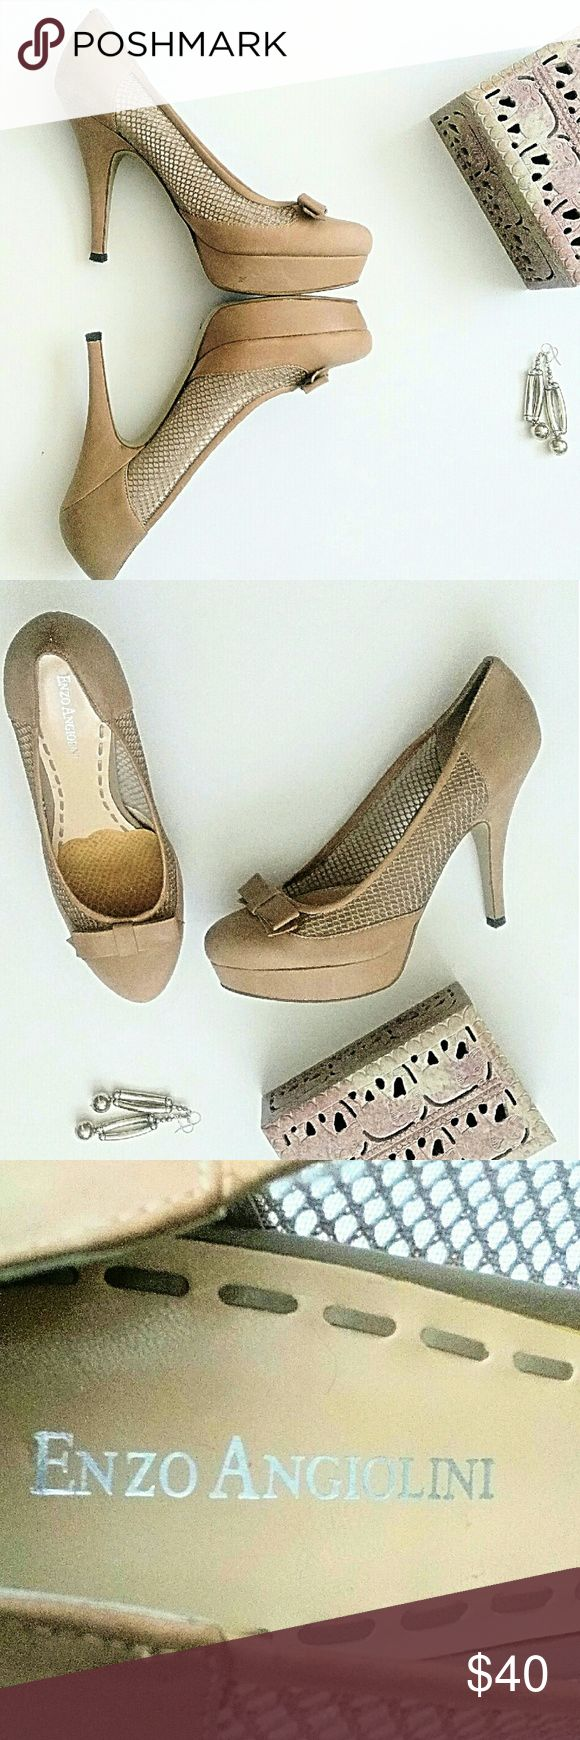 Listing! Enzo Angiolini Leather Bow Beige Pump 100% leather uppers with textile mesh inserts adorning both sides of shoes. Chic bow on almond-toe shoe fronts. Heels approx. 4.5in. w/comfortable 1in platforms to making walking easy. Height without the pain!  EUC, worn once in a wedding.  Every woman needs this kind of full on neutral pump.**Ask questions B4 U buy!** Enzo Angiolini Shoes Heels